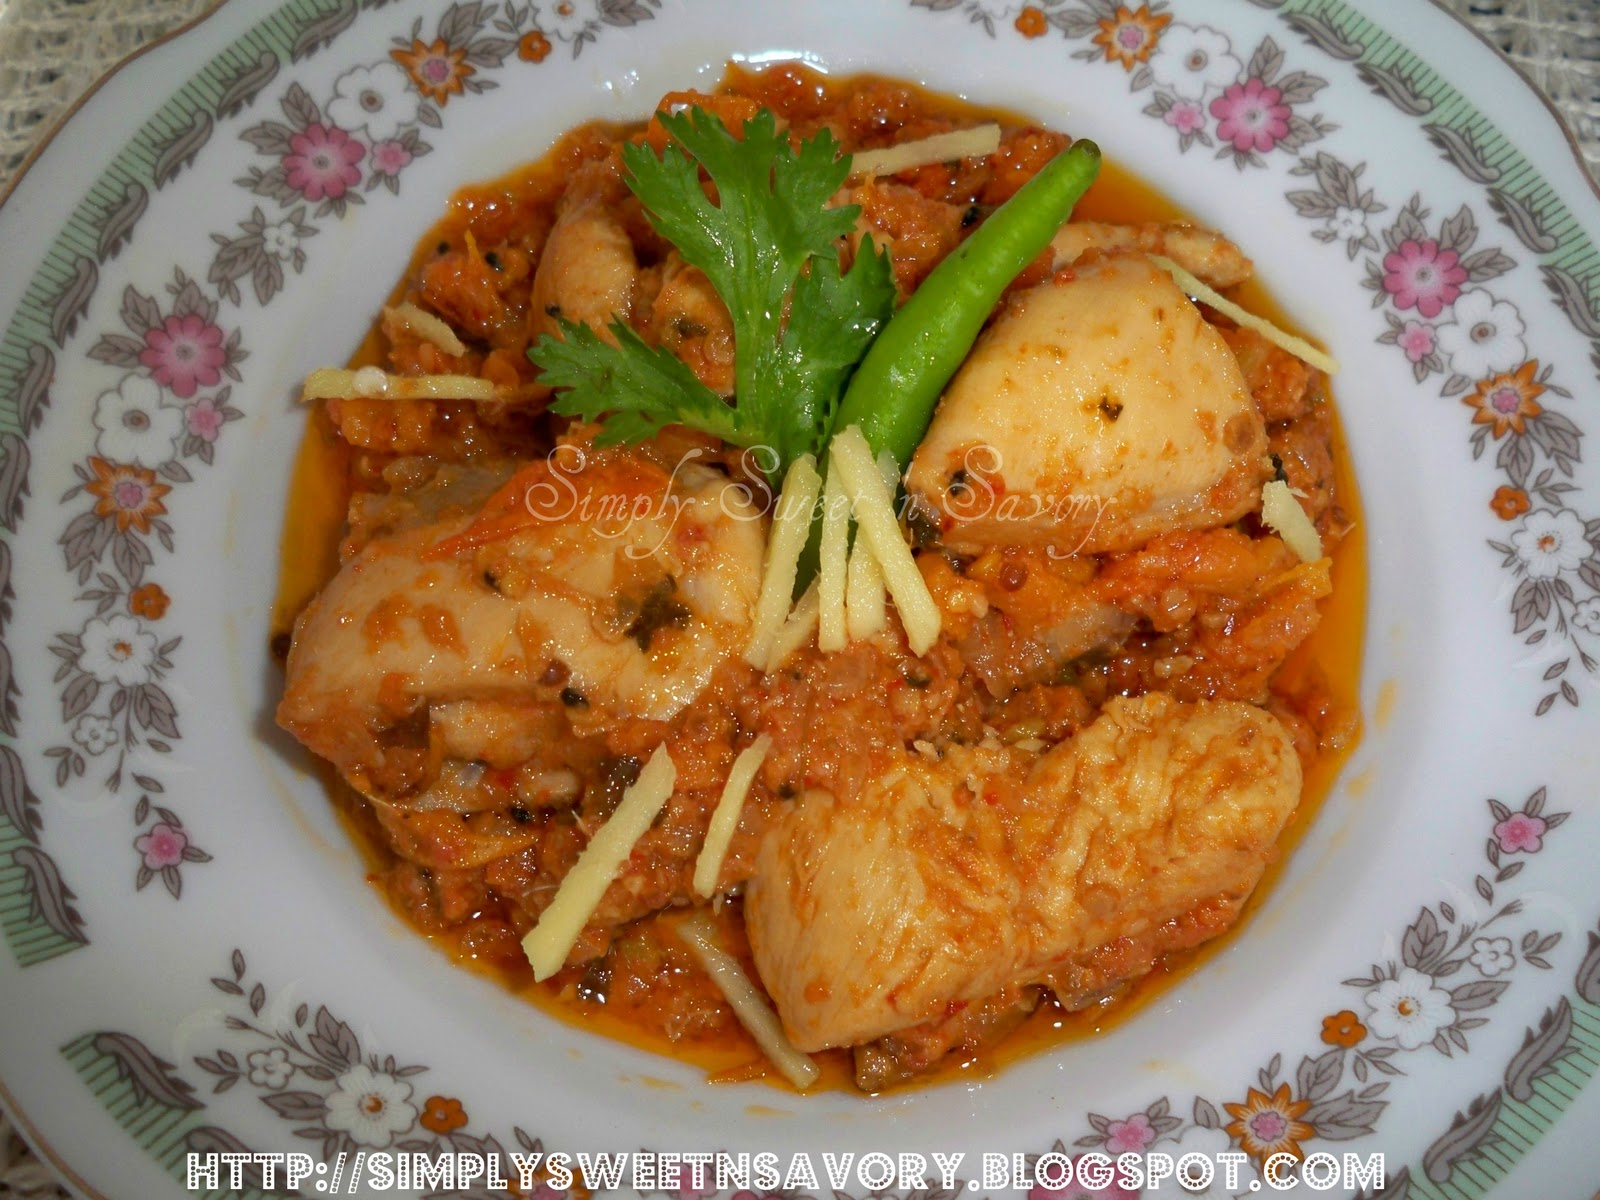 Simply Sweet 'n Savory: Chicken Karahi 2